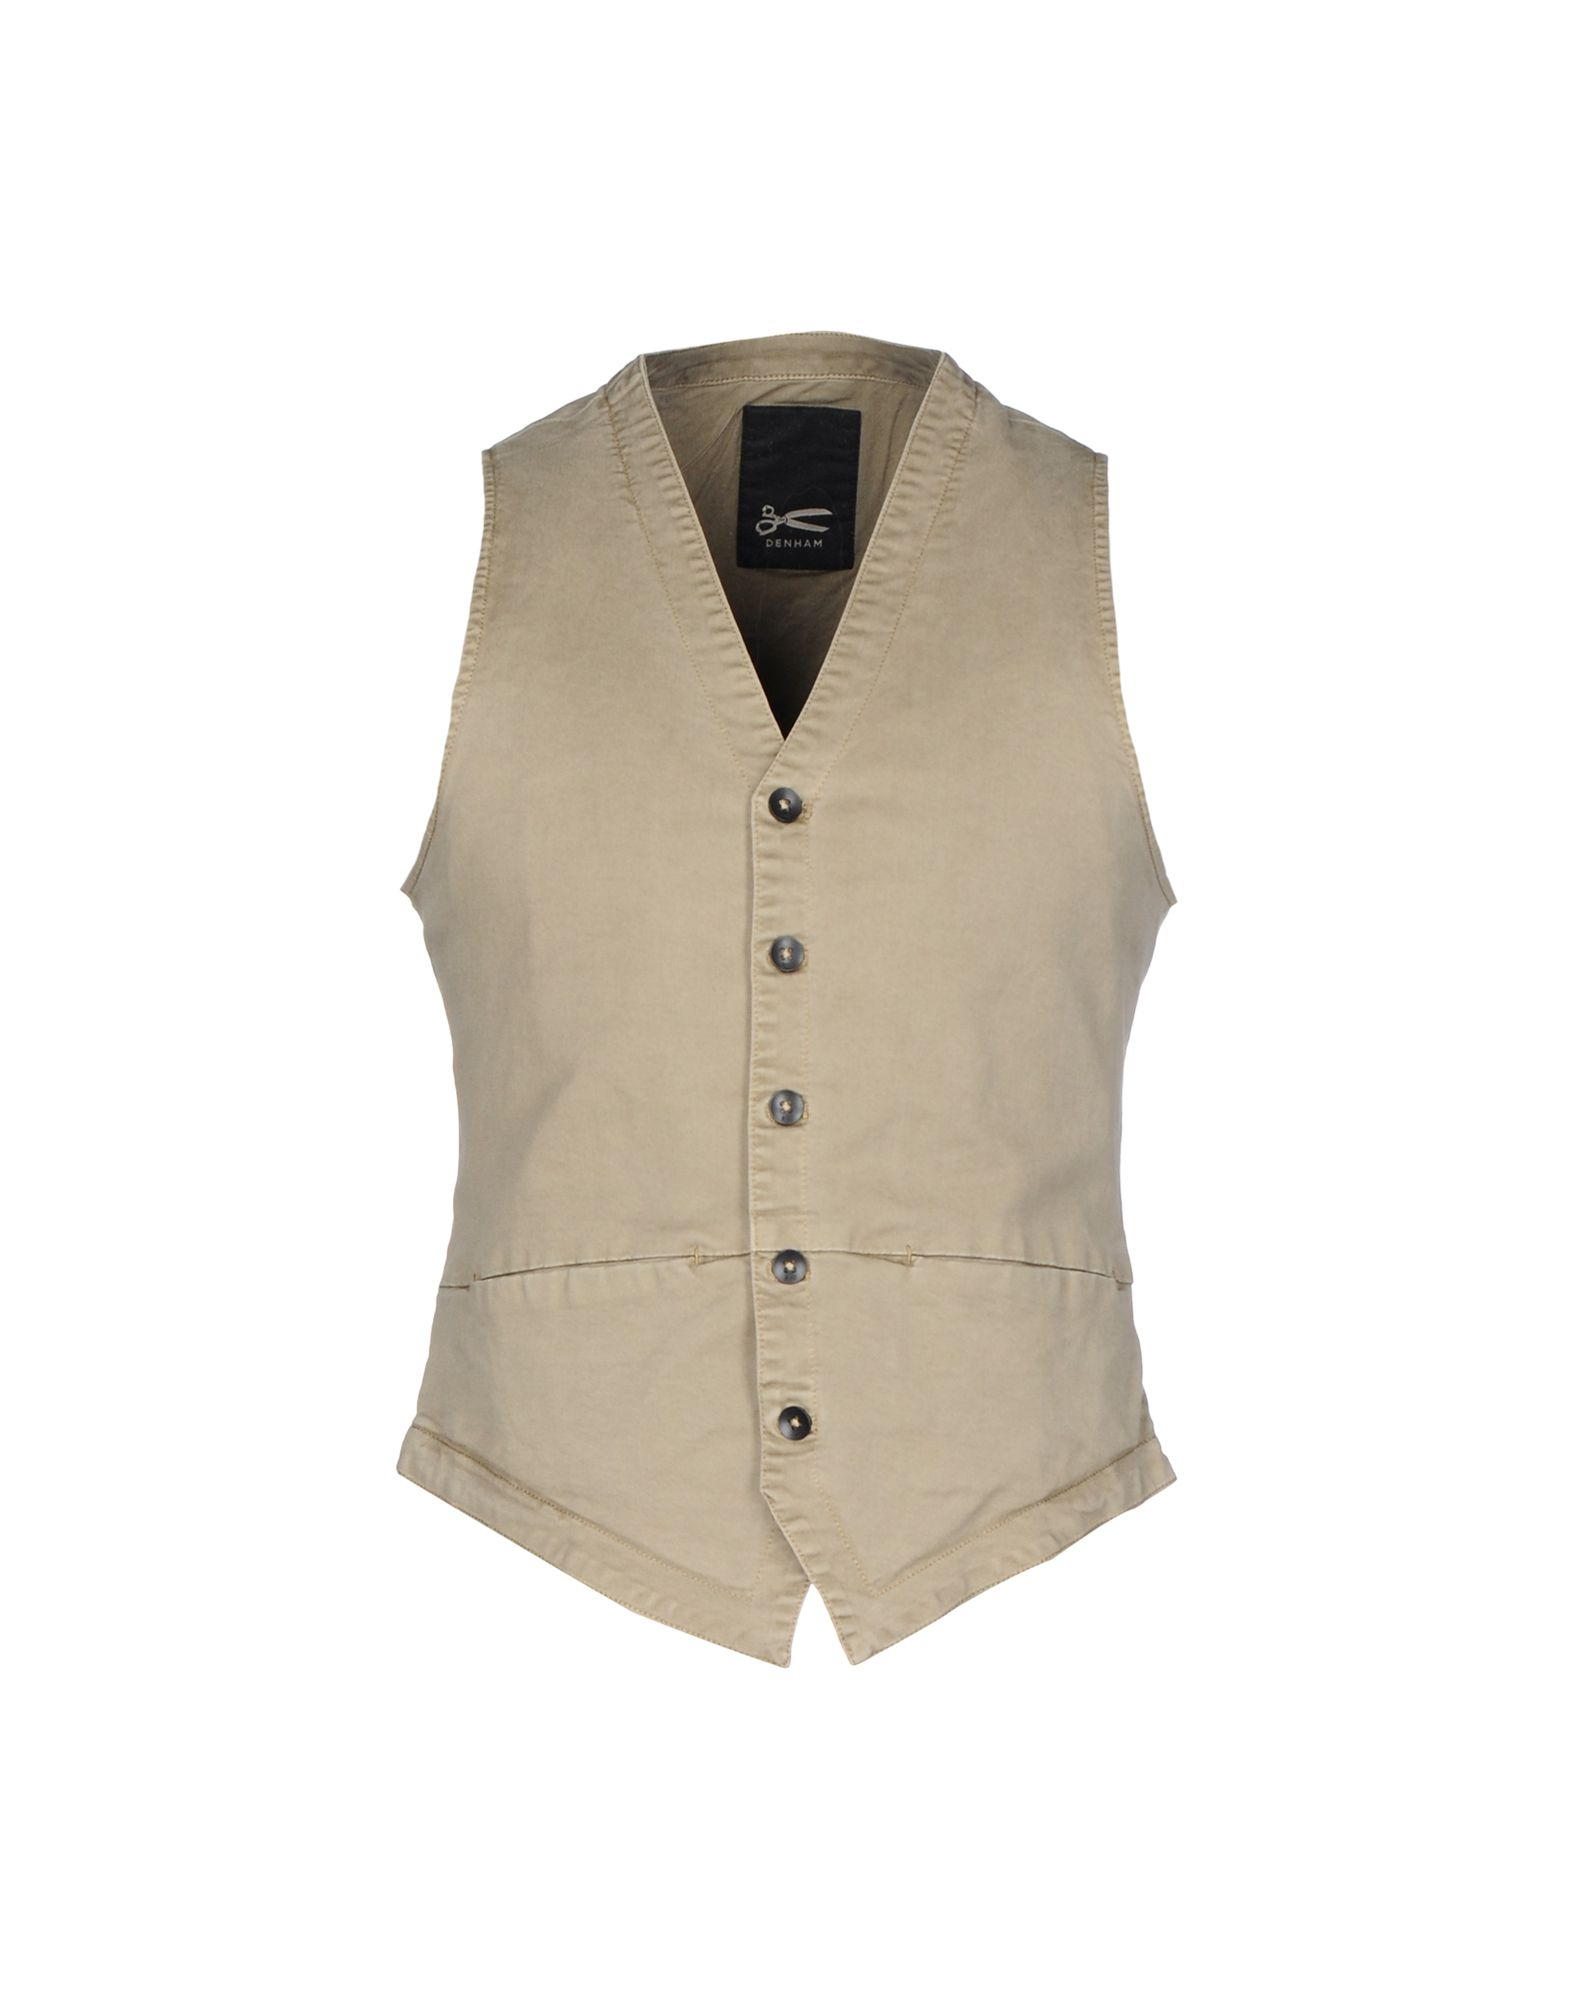 DENHAM Suit Vest in Sand